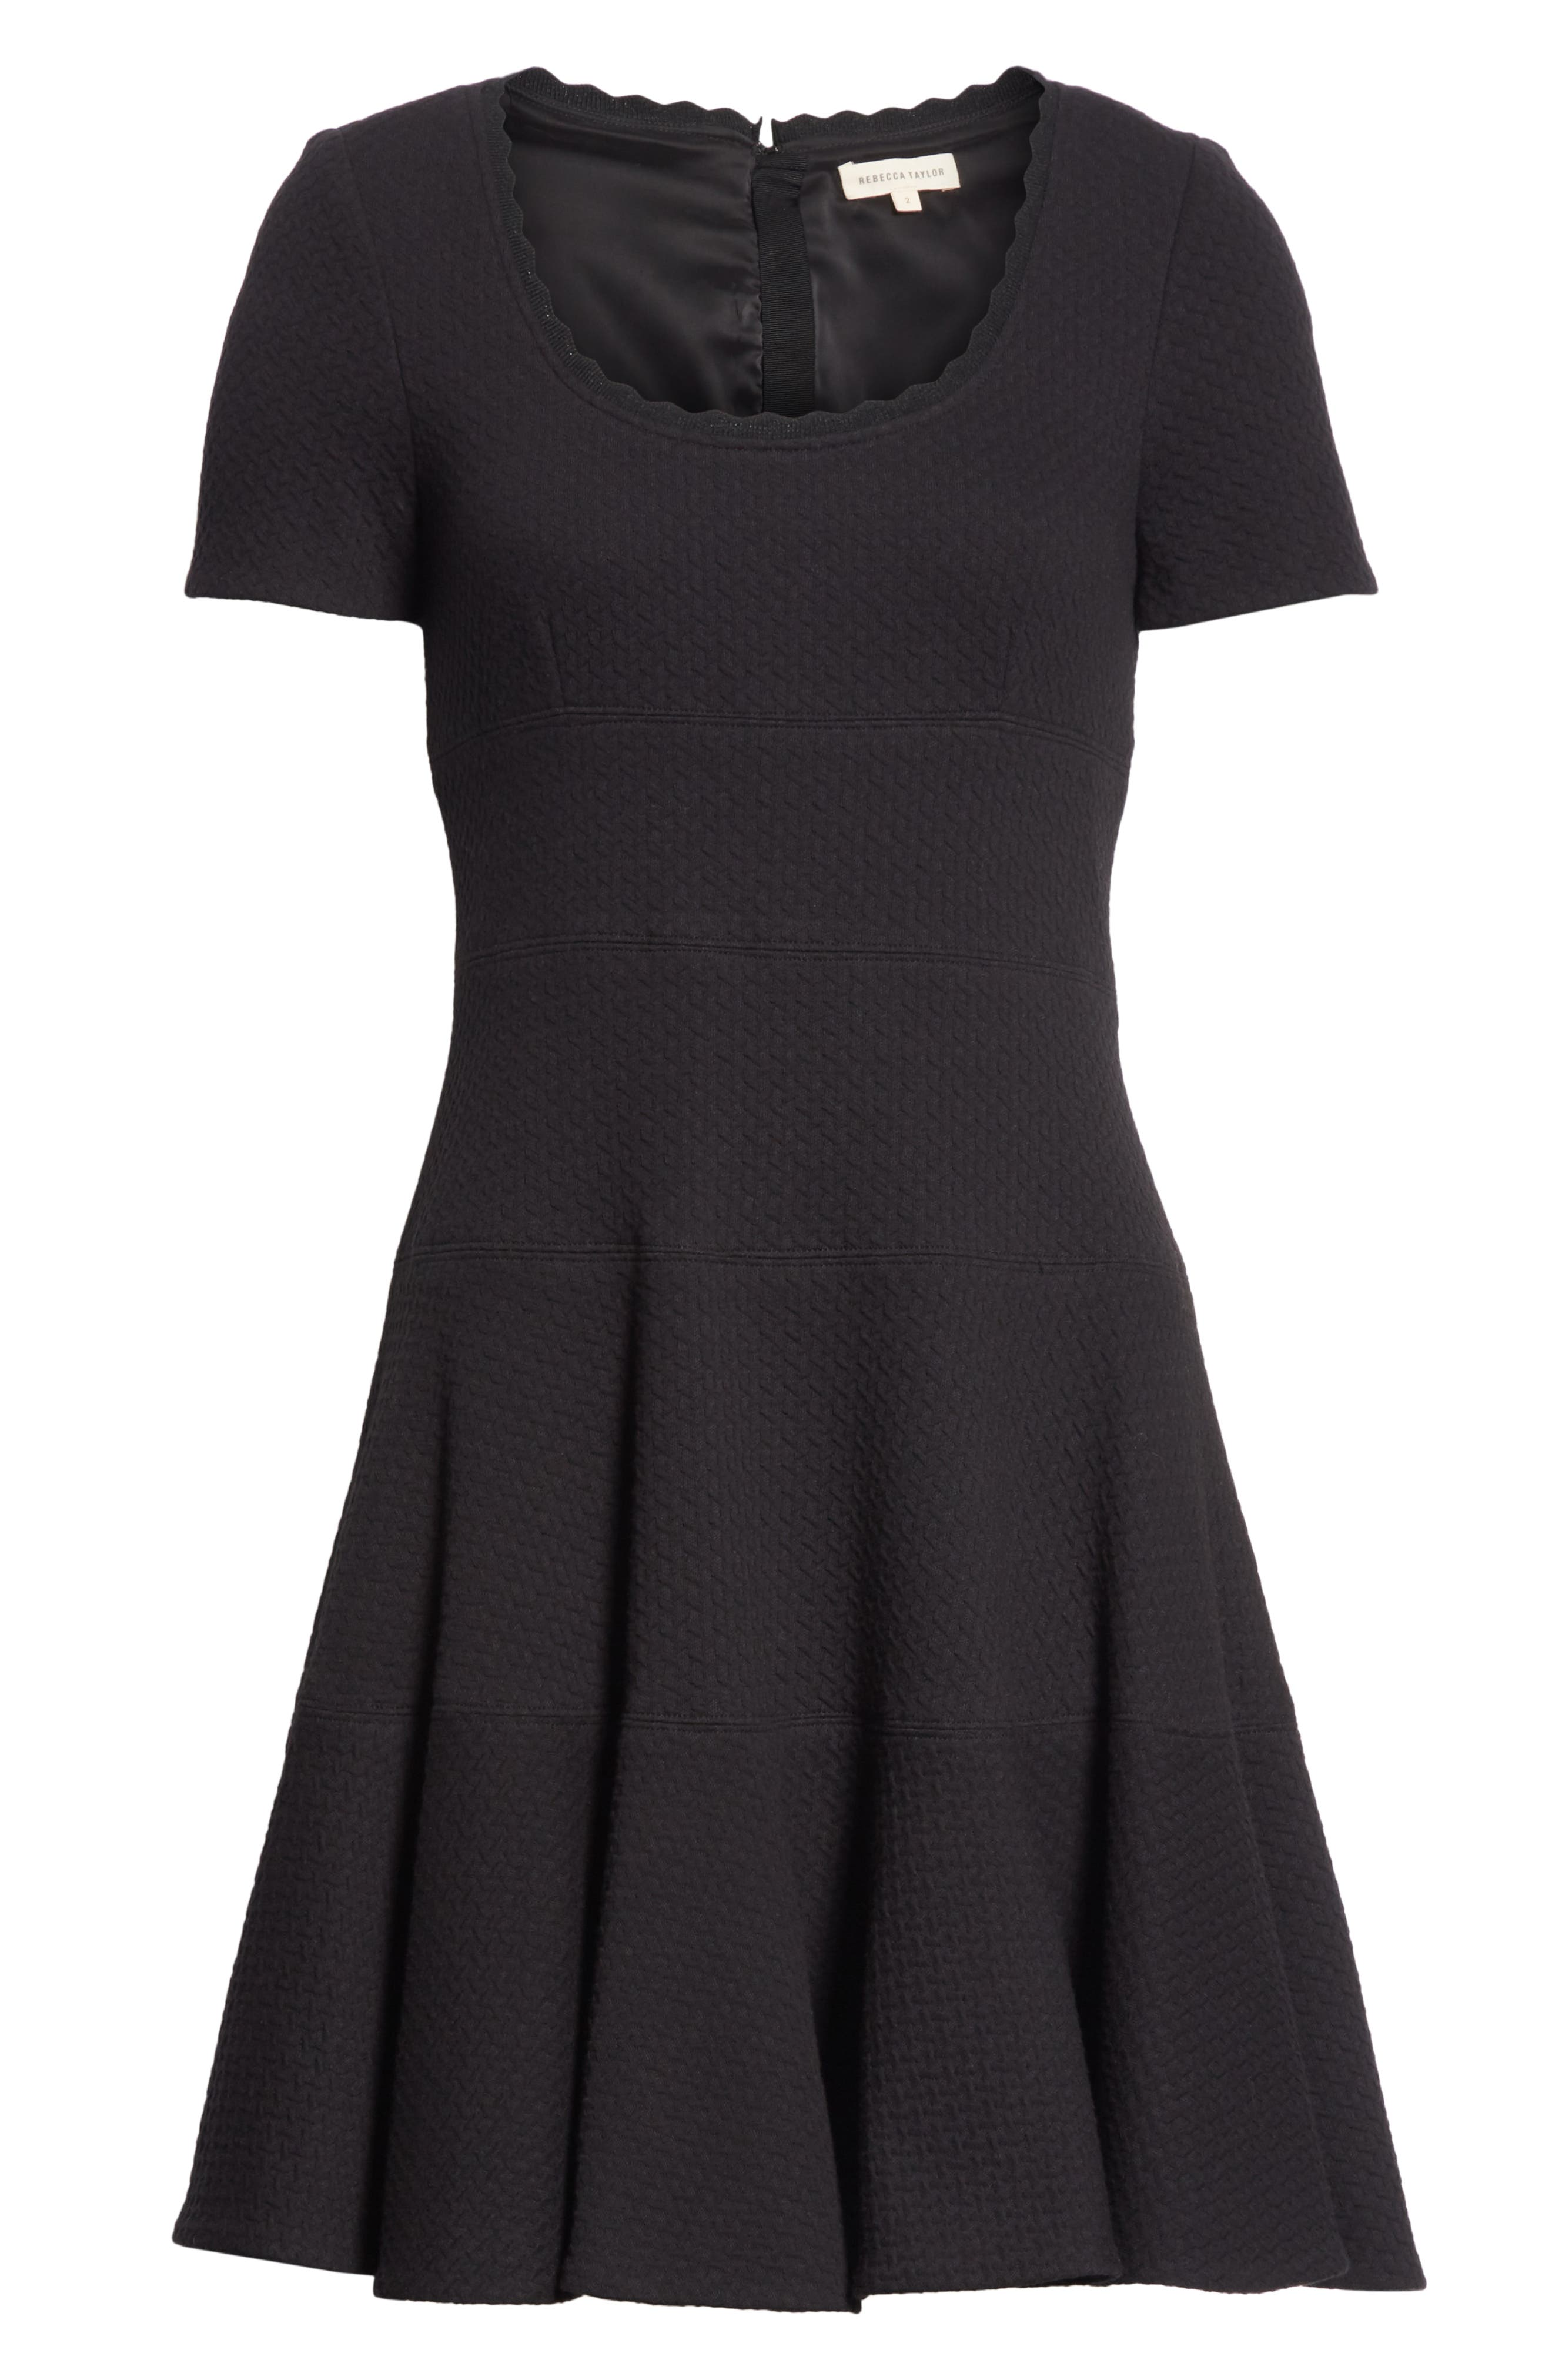 Textured Stretch Cotton Fit & Flare Dress,                             Alternate thumbnail 7, color,                             Black